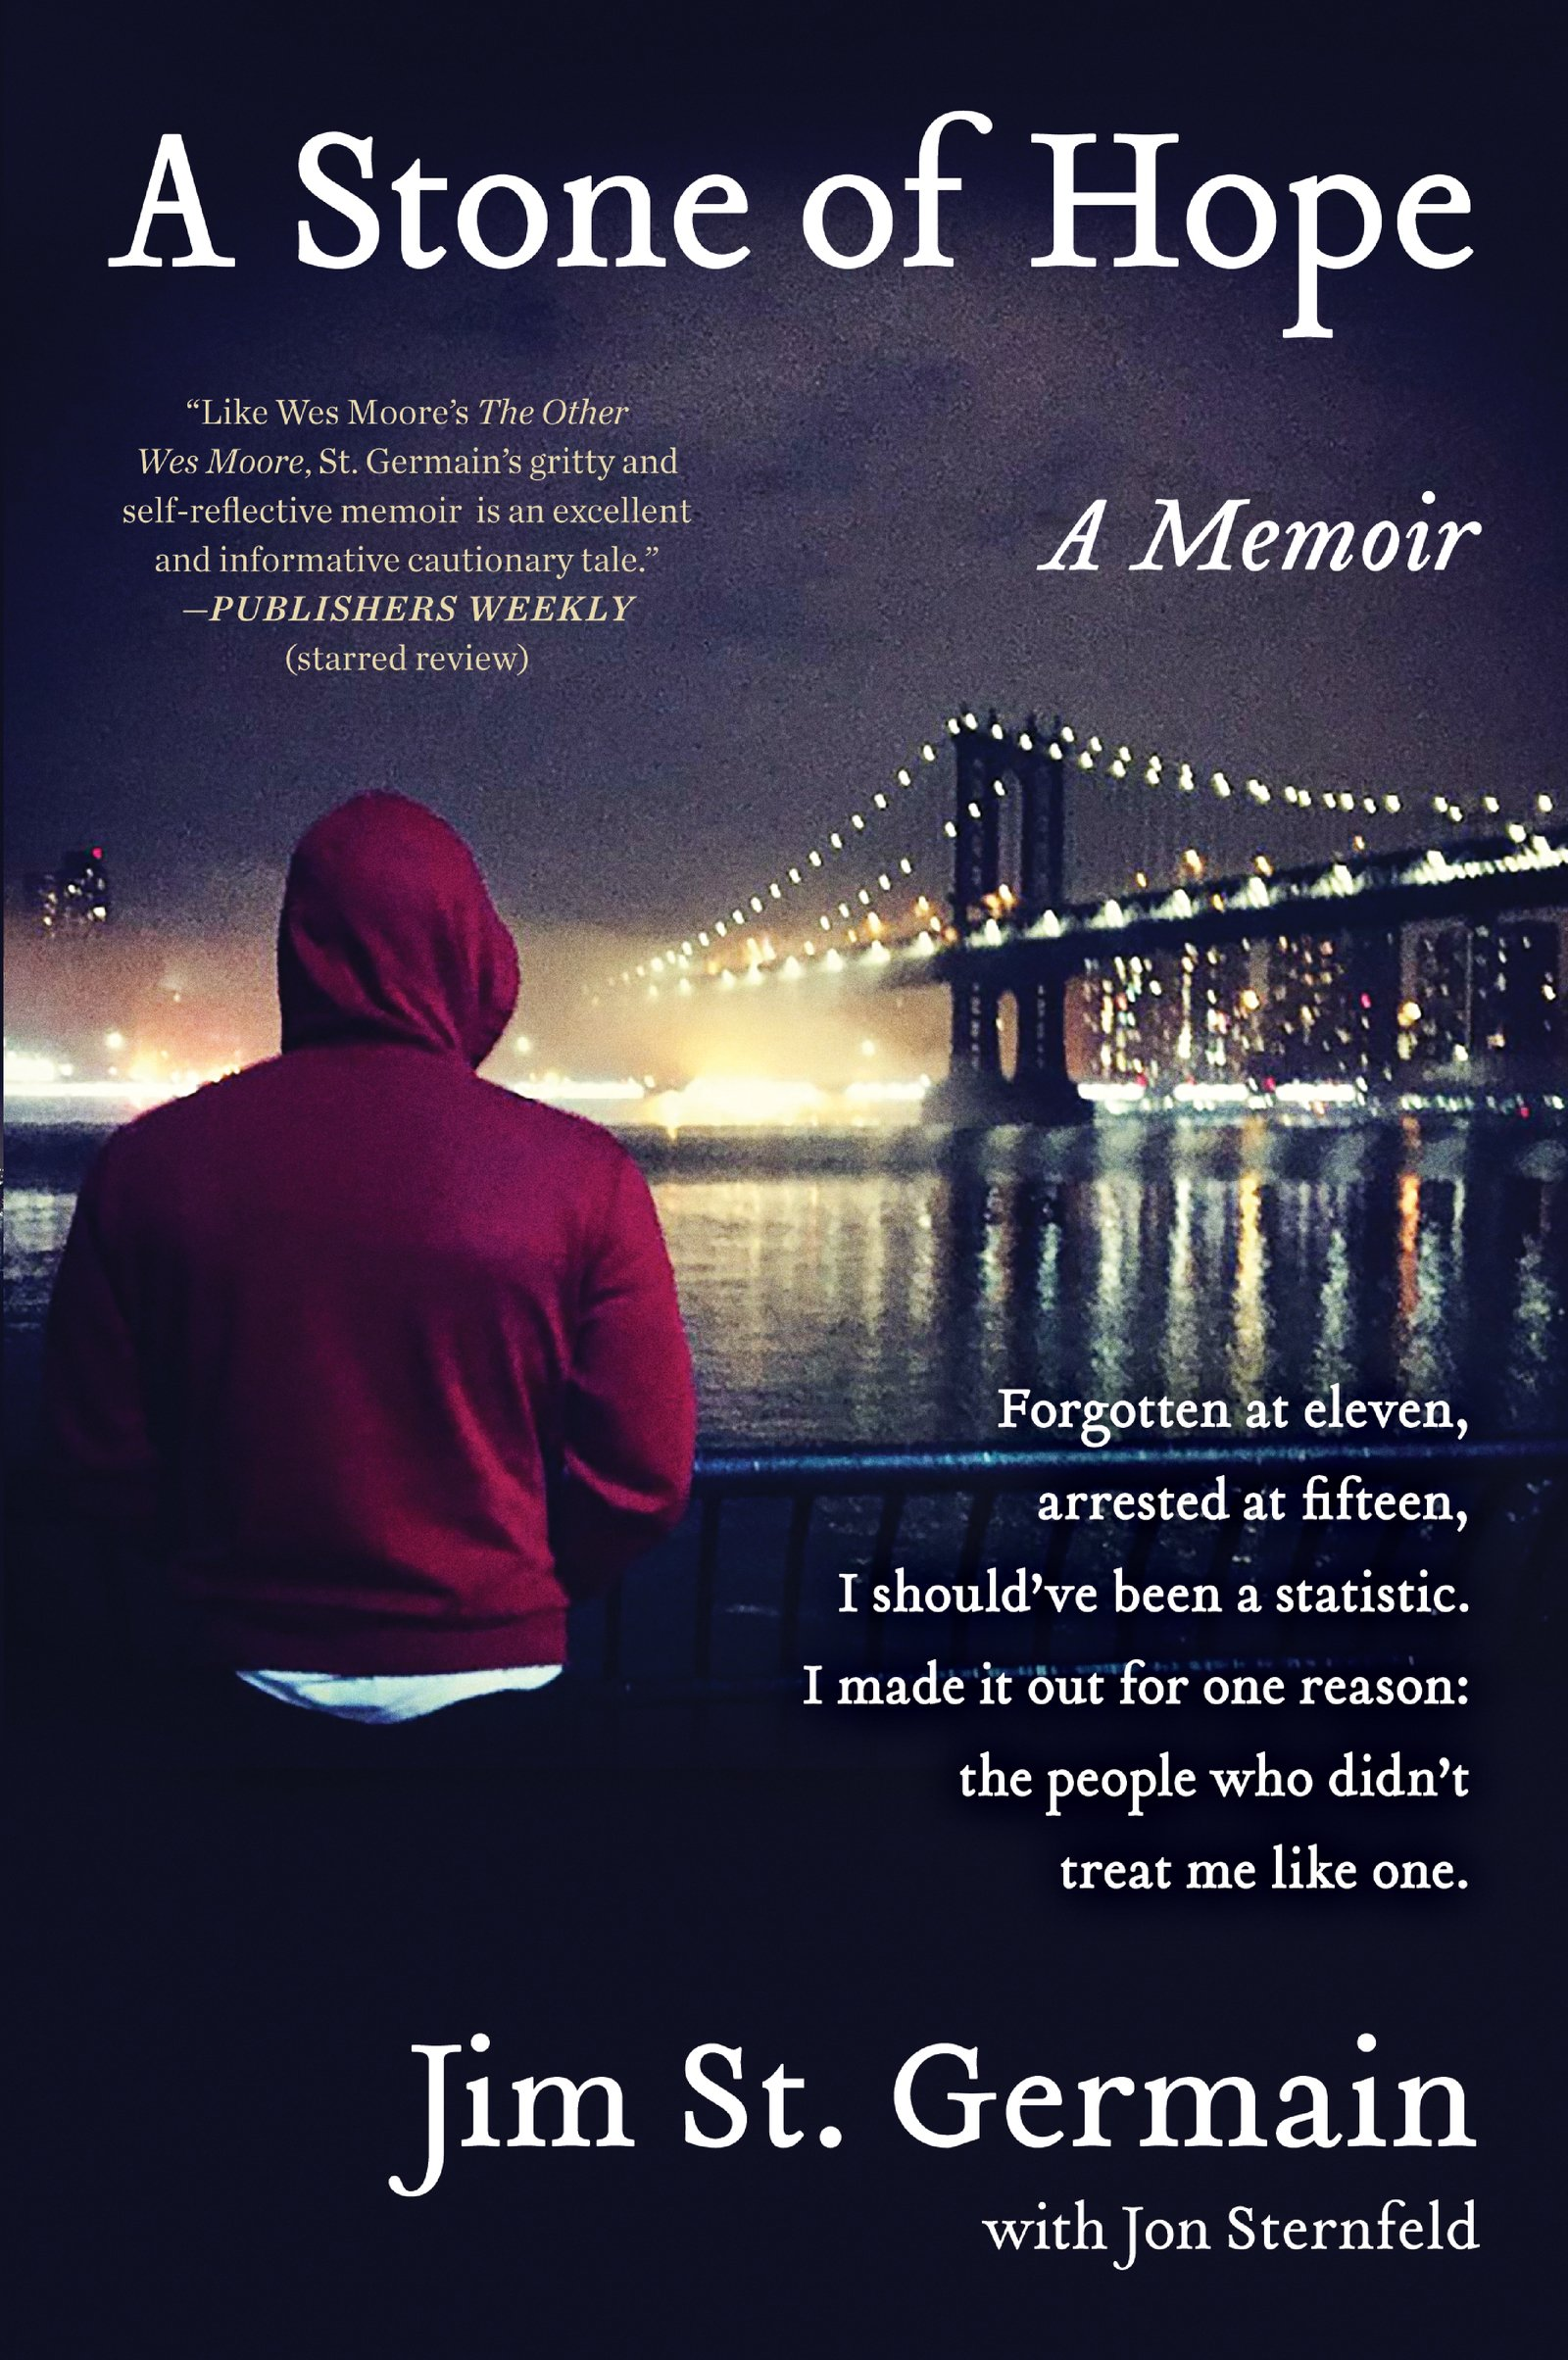 The Prophet from the Projects: a memoir from the mentor